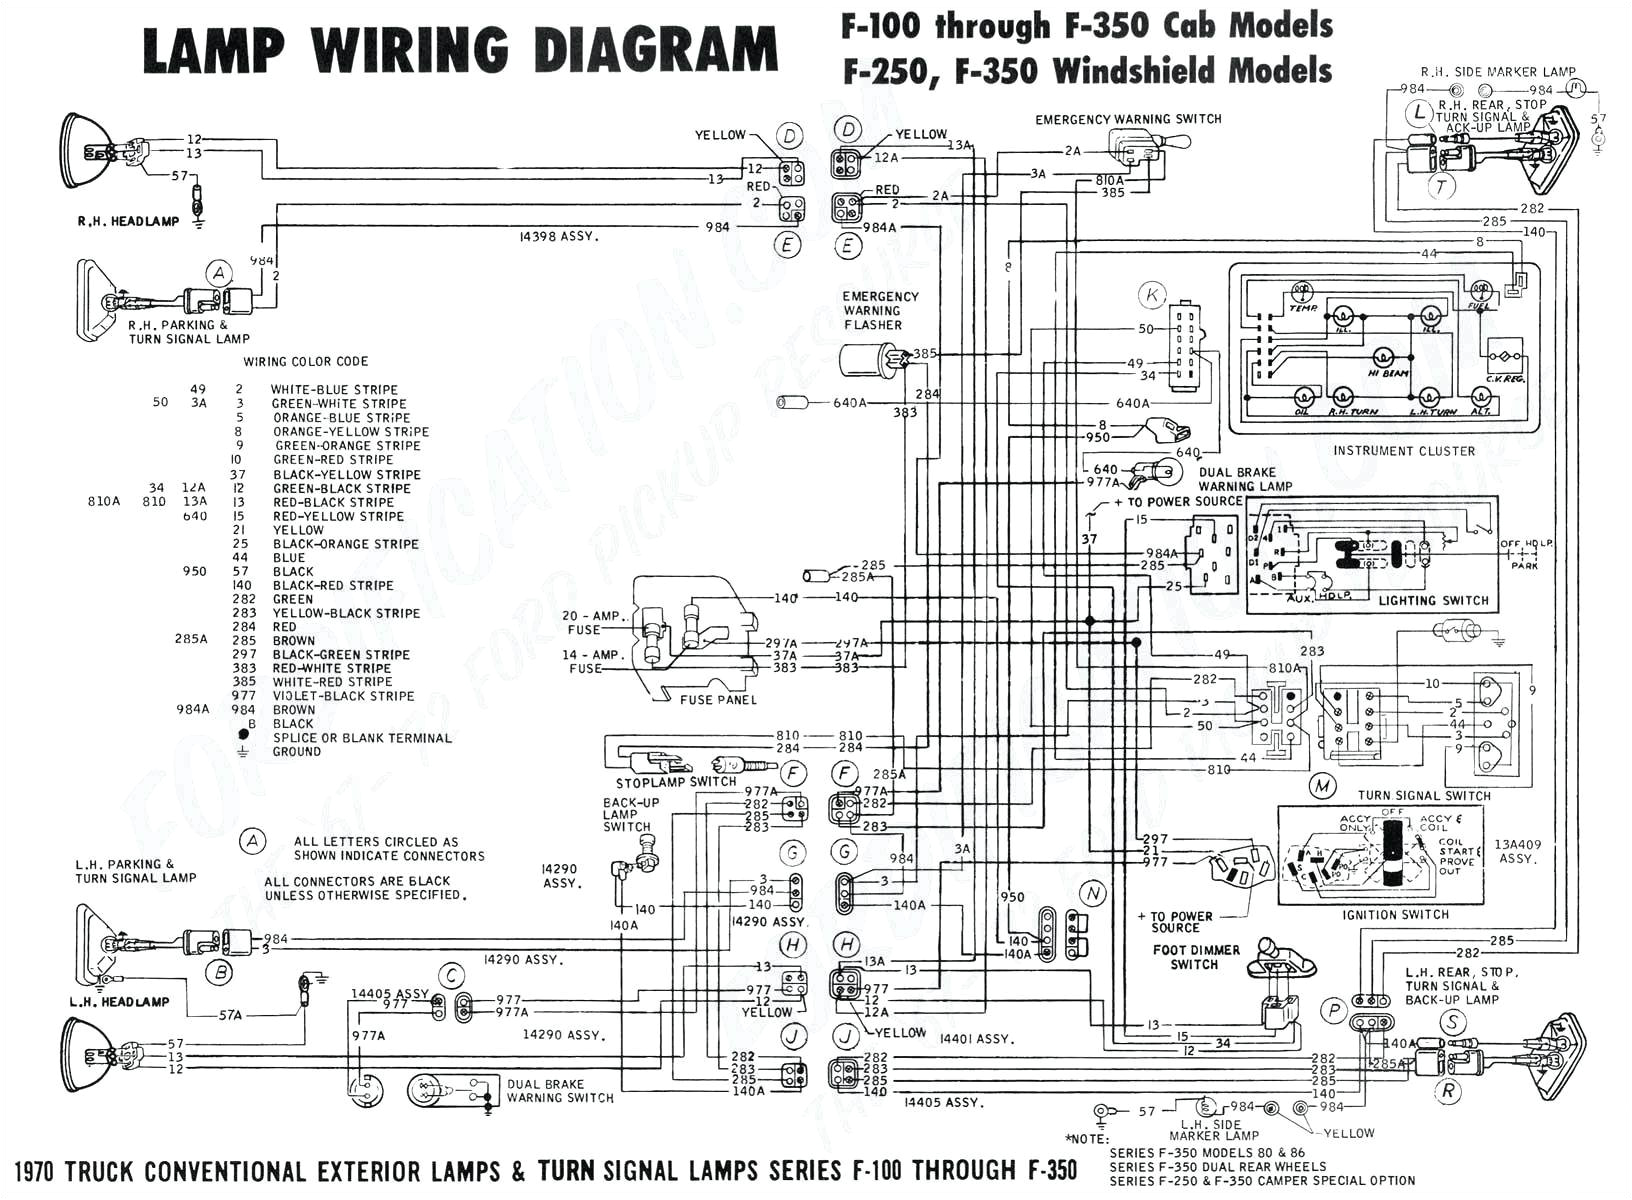 DIAGRAM] Sony Cdx Gt25mpw Wiring Diagram Radio FULL Version HD Quality  Diagram Radio - 52789.VINCENTESCRIVE.FR2006 Crown Vic Fuse Box Diagram - vincentescrive.fr